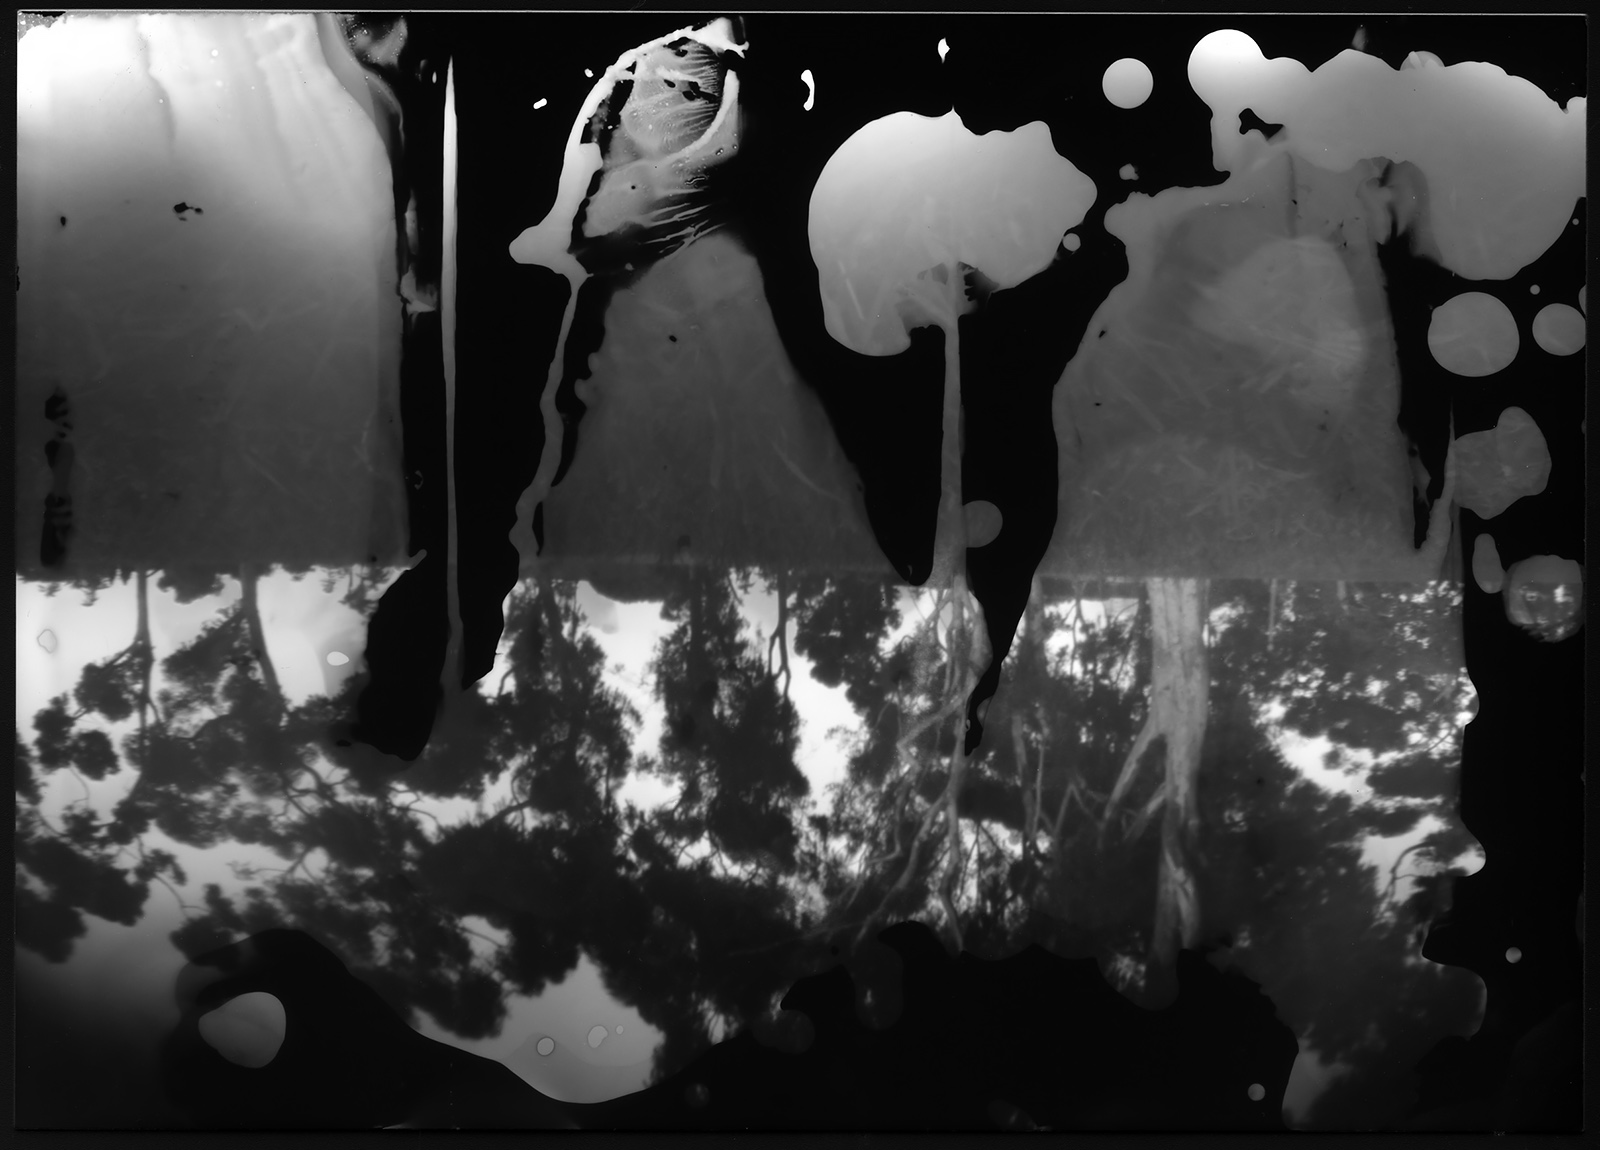 Making Black And White Art With Pinhole Cameras